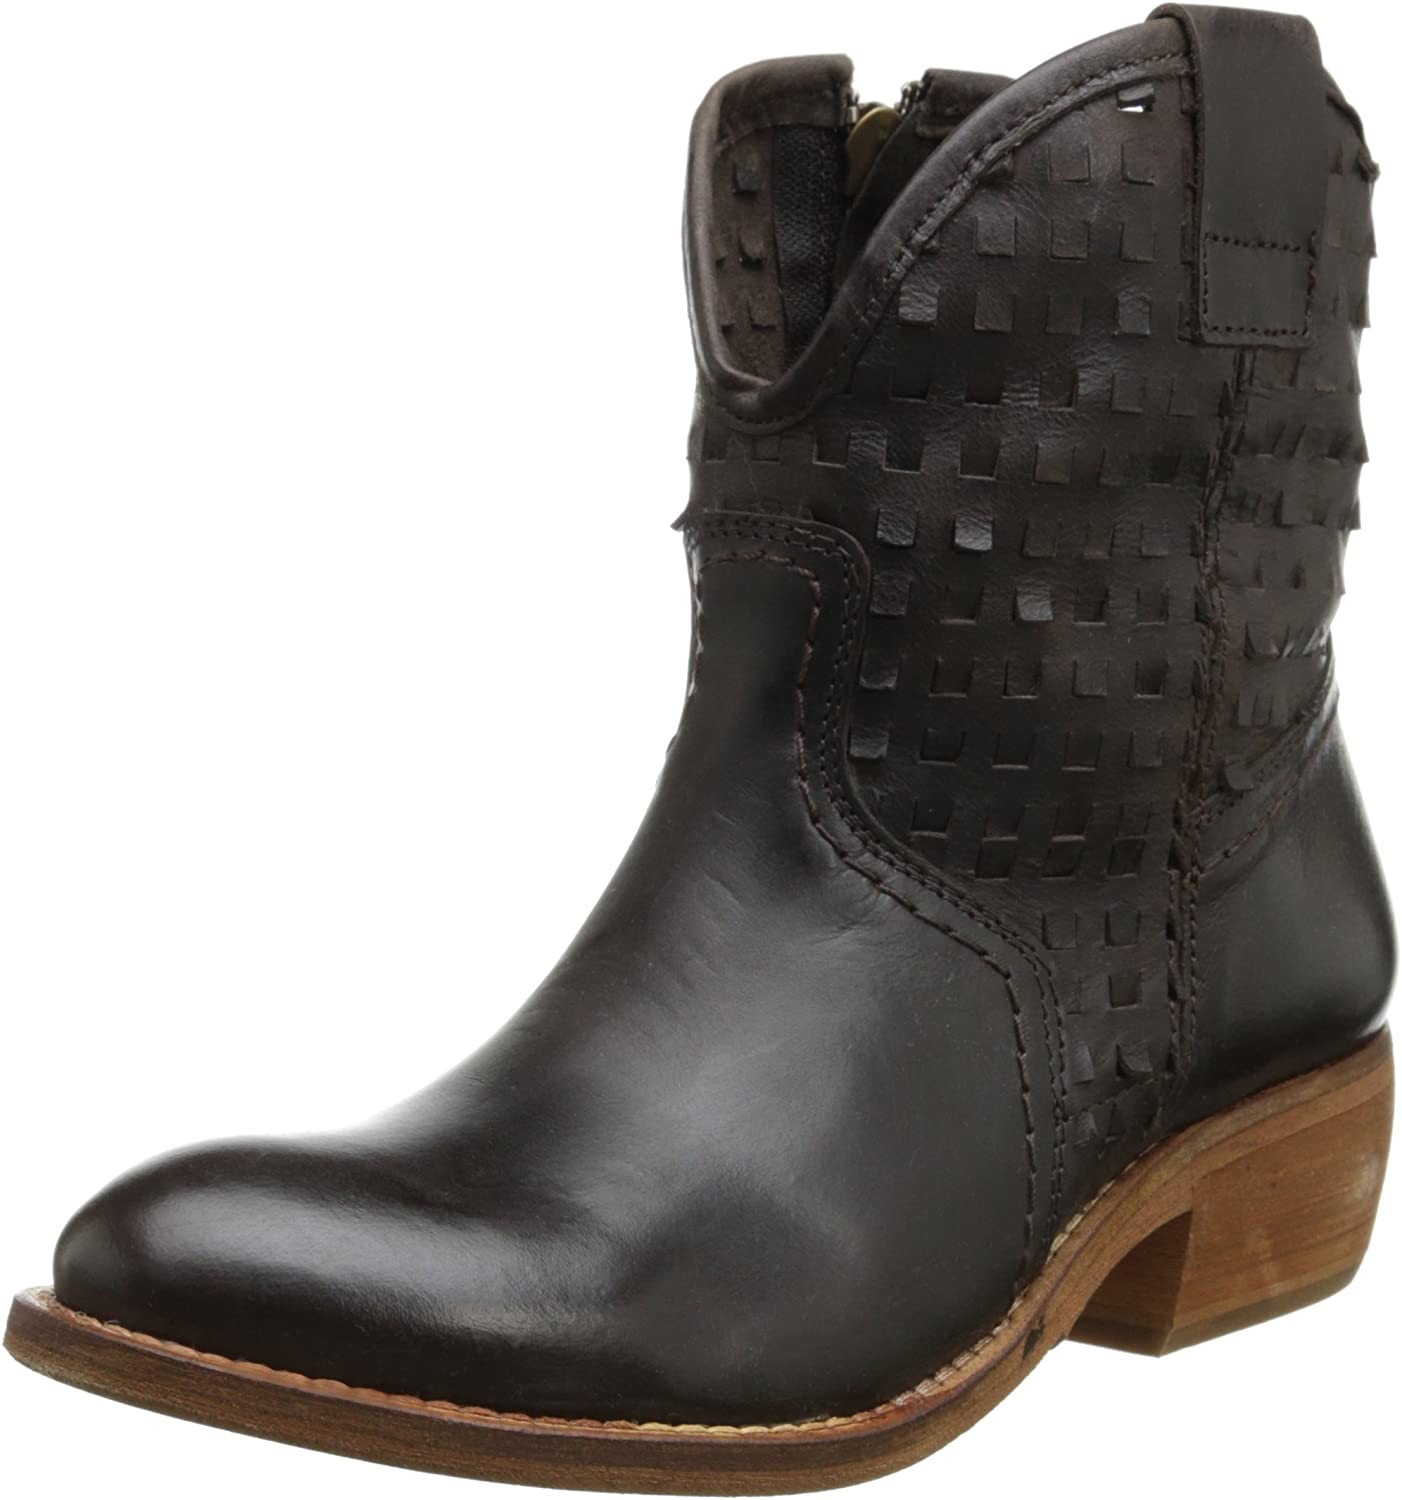 Taos Women's Holey Cow Western Boot